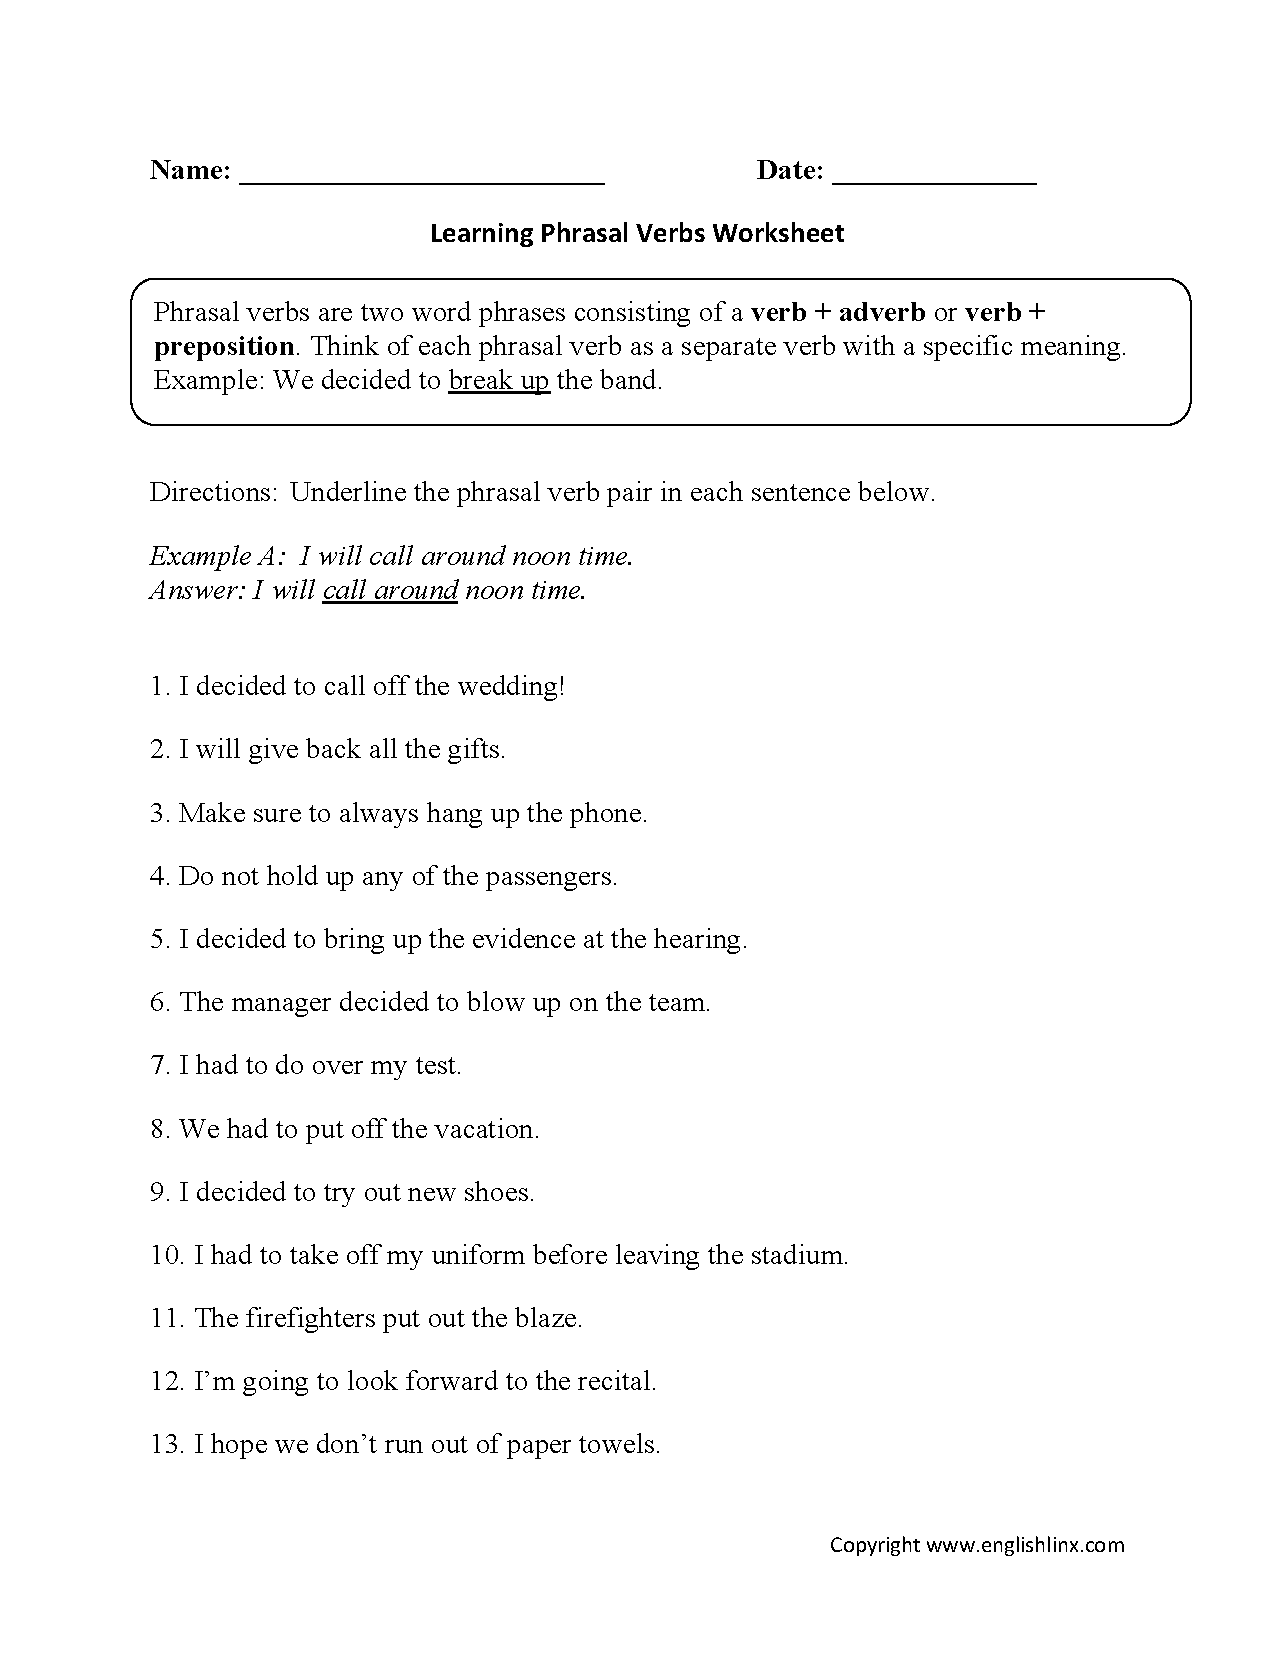 Worksheets Sentence Fragment Worksheet learning phrasal verbs worksheet englishlinx com board pinterest this instructs the student to underline verb pair in each given sentence ver